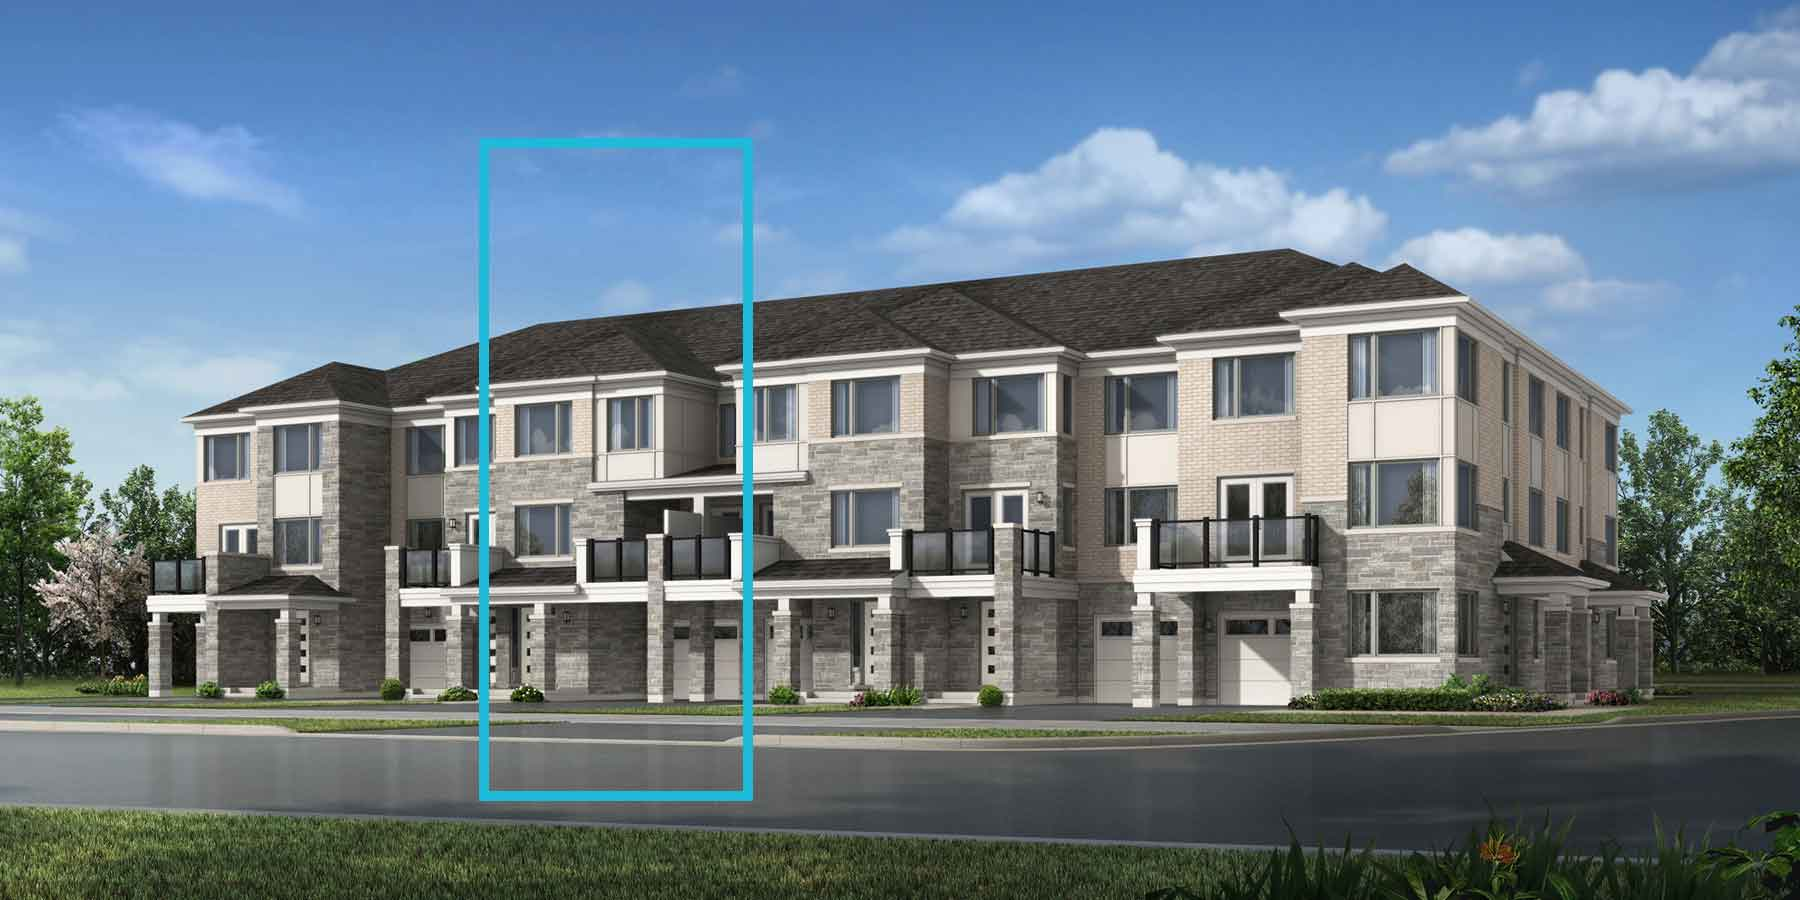 Rosebank Plan TownHomes at Seaton Whitevale in Pickering Ontario by Mattamy Homes